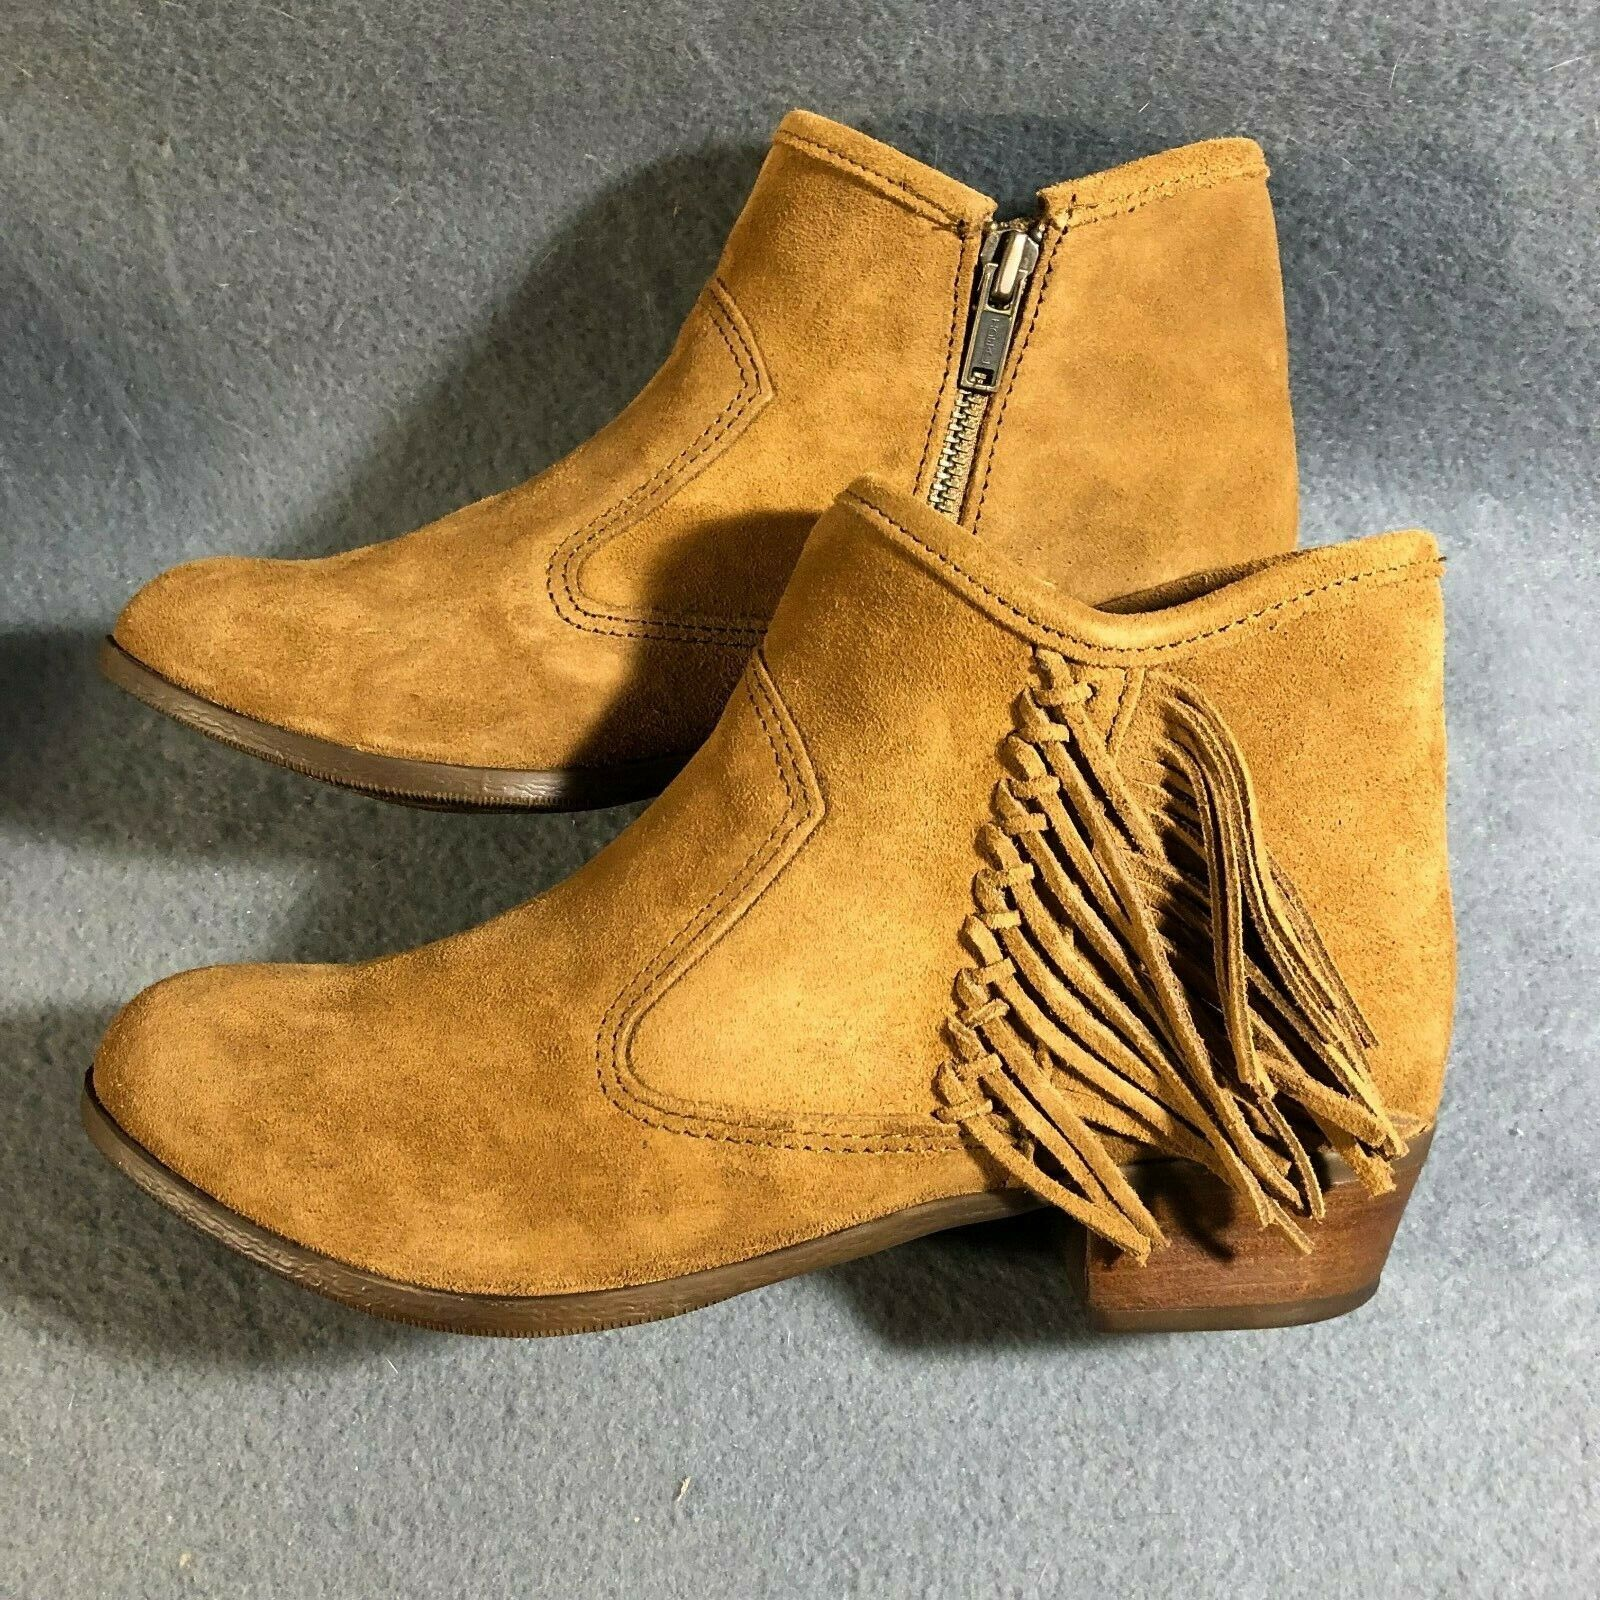 New Minnetonka 1523 Blake Boot Brown Side Zipper and Fringe - Multiple sizes